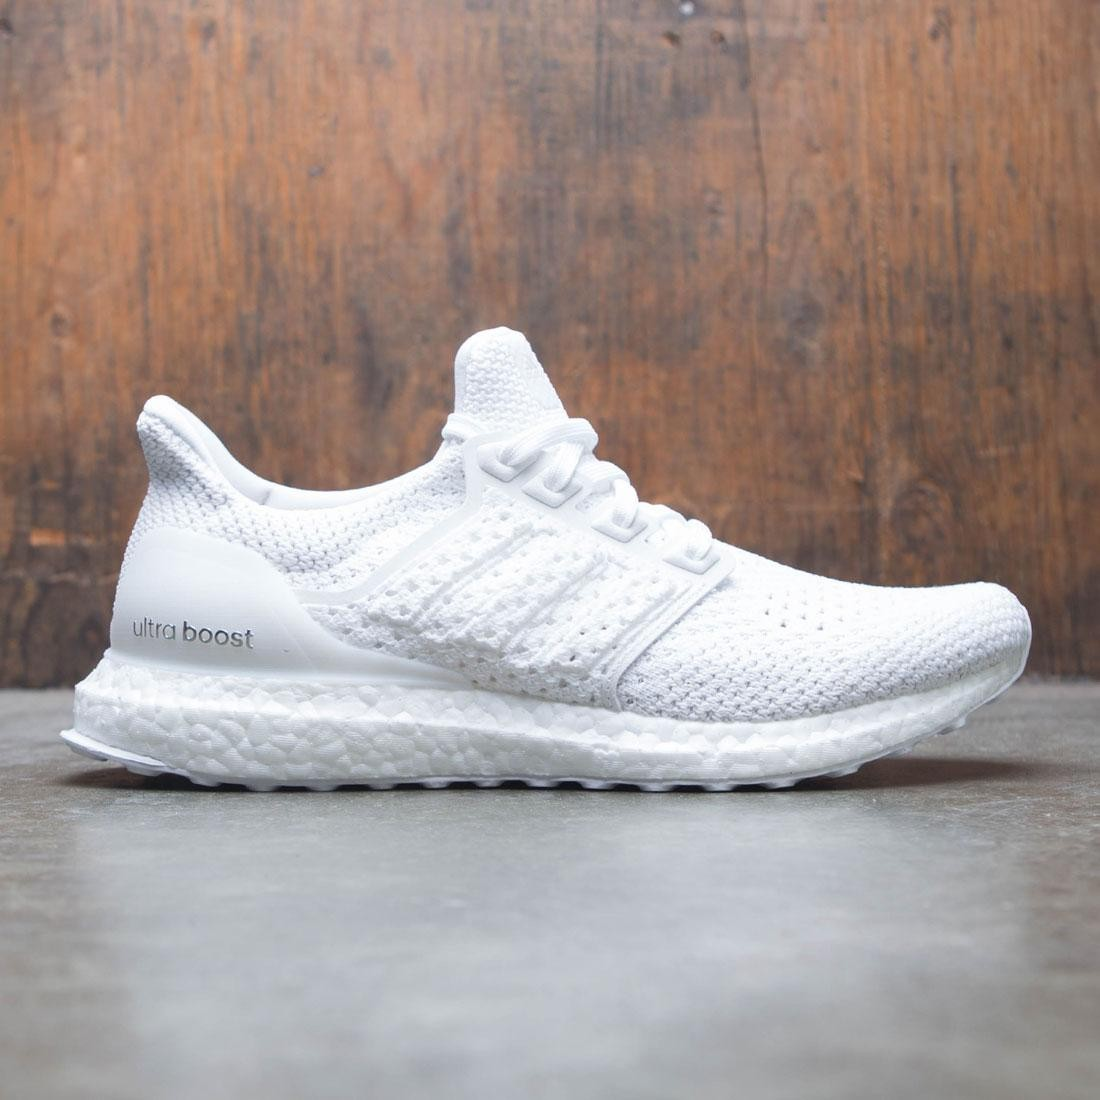 118c8f3aa8ae8 Adidas Men UltraBOOST Clima white footwear white clear brown